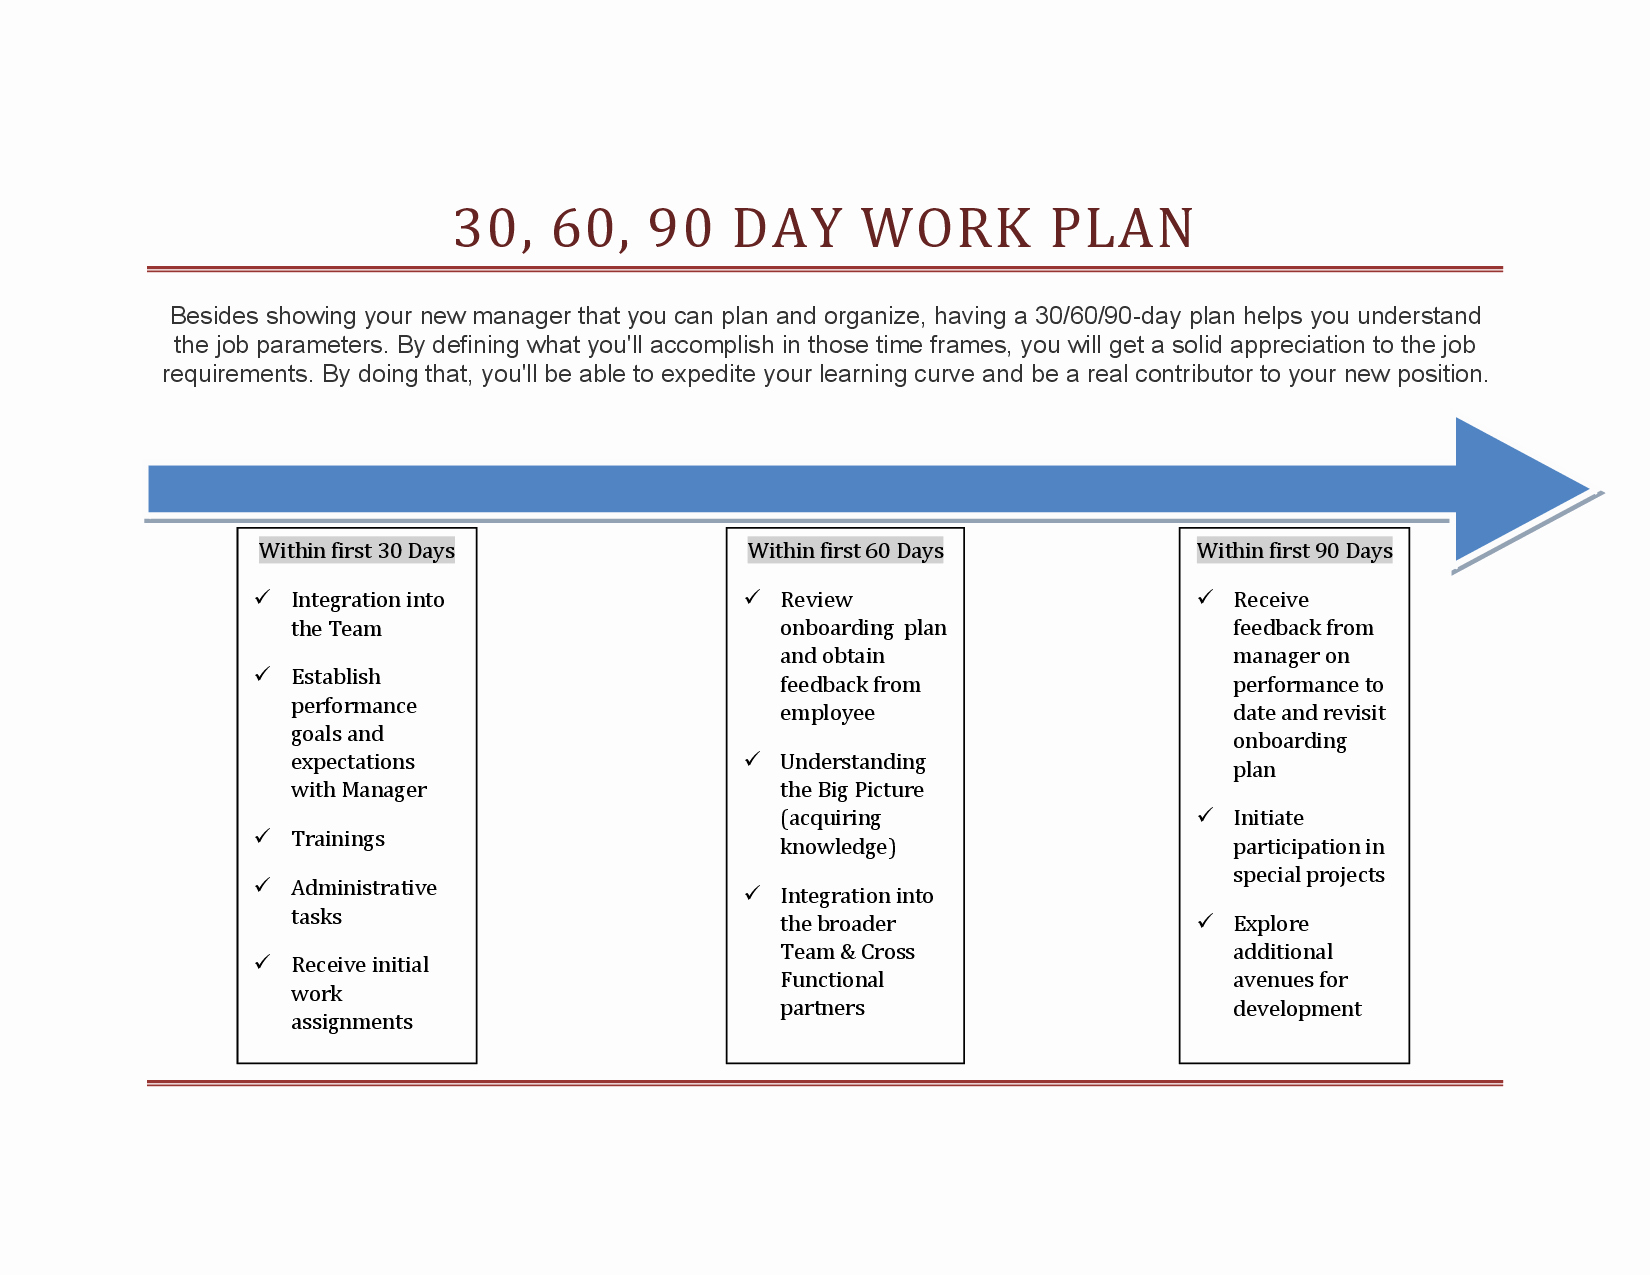 90 Day Sales Plan Template Unique 30 60 90 Day Work Plan Templatepdf by Tinammckenna